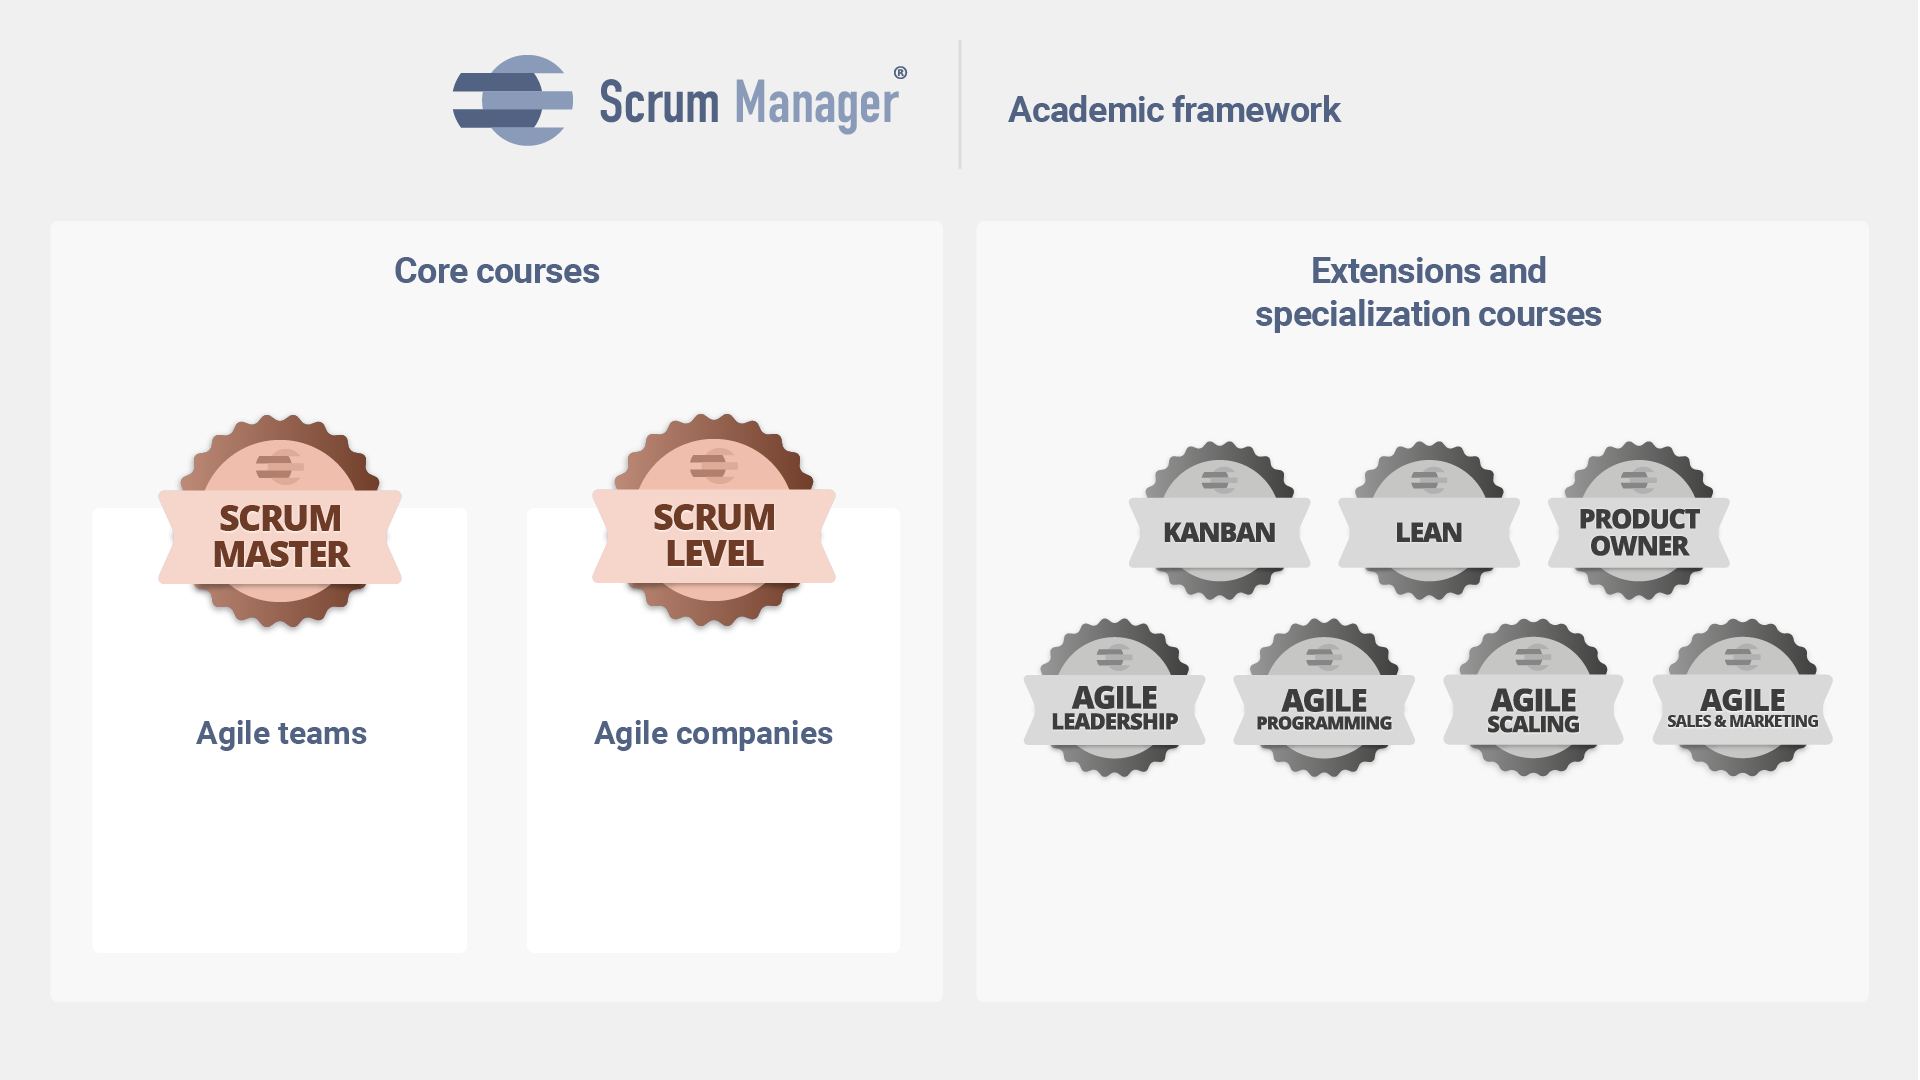 scrum manager courses